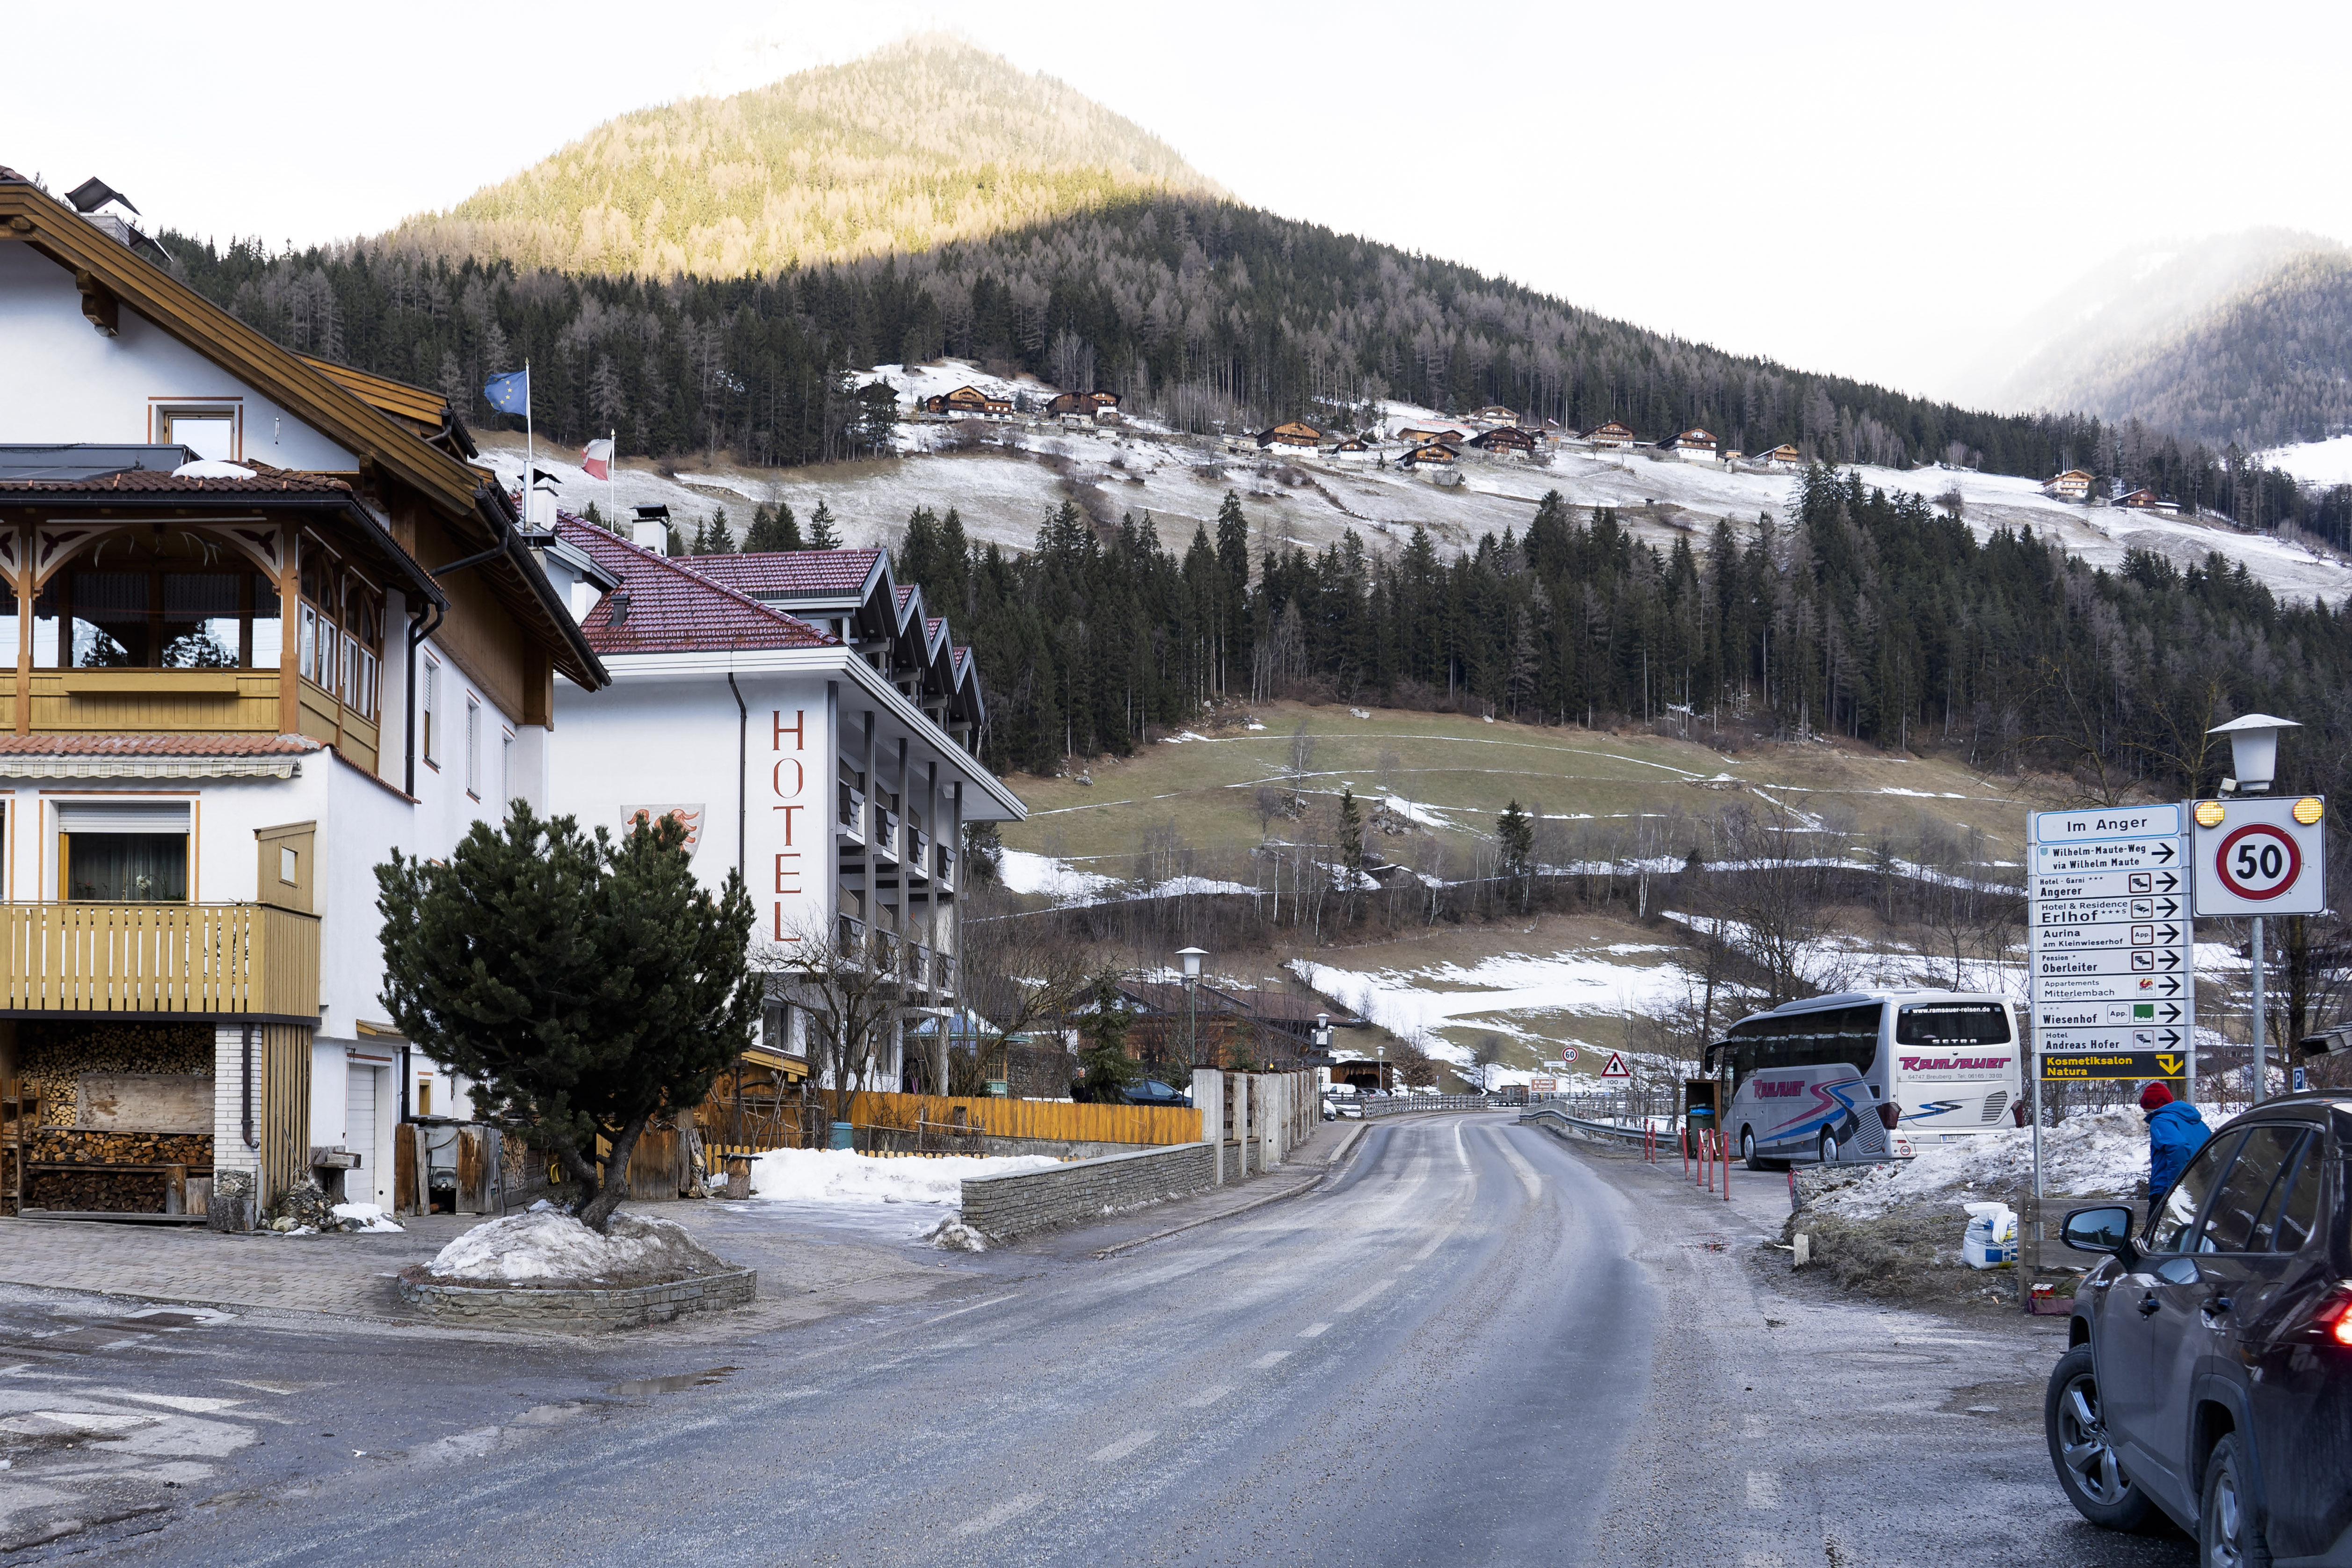 General view on a street where a car had plowed into a group of people in Luttach, near Bruneck in the northern region South Tirol, Italy, on Jan. 5, 2020.